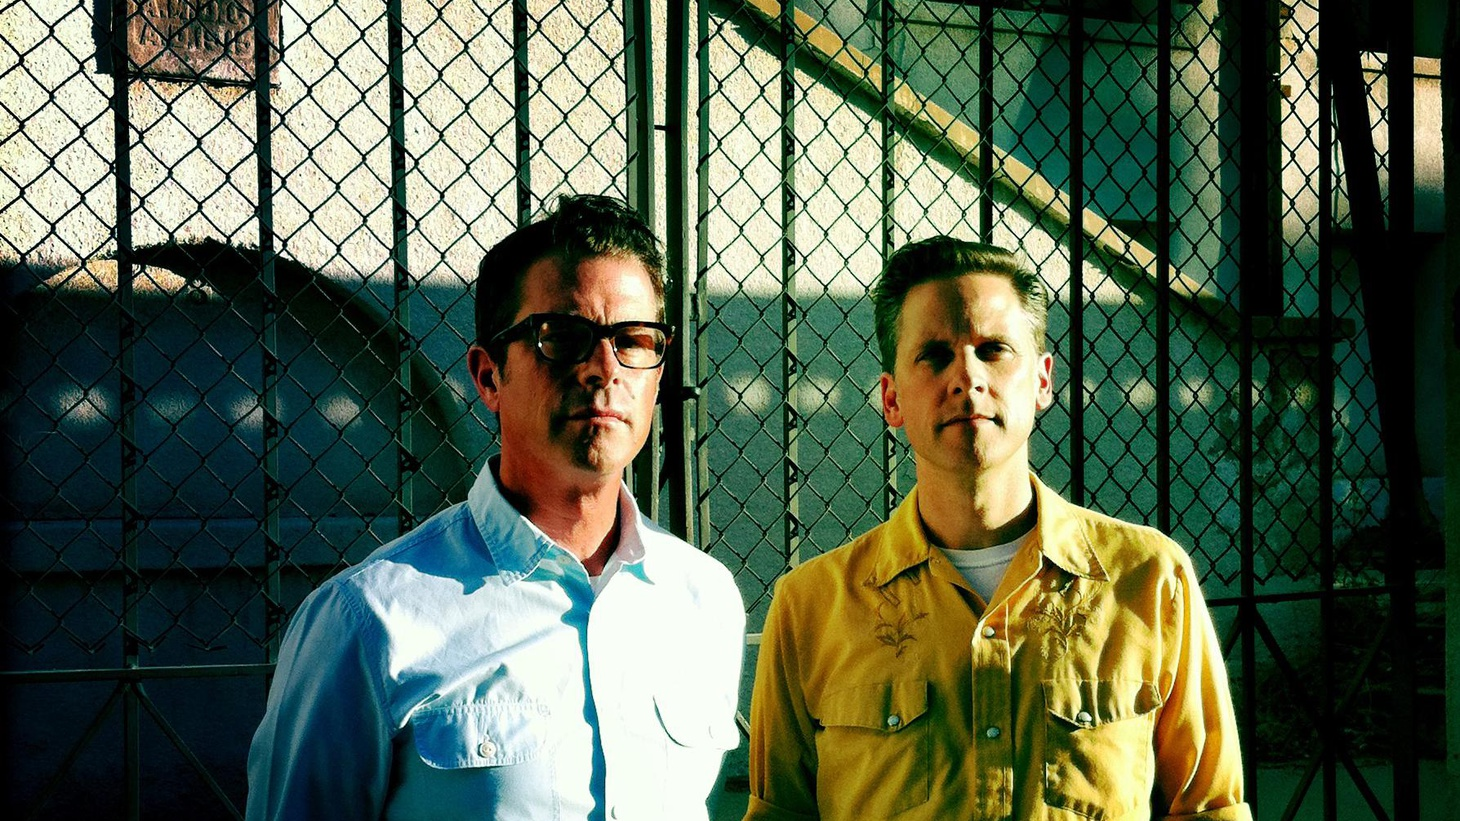 Calexico has always had a distinctive Southwestern influence to their music, but their latest album was inspired by a stint in New Orleans.